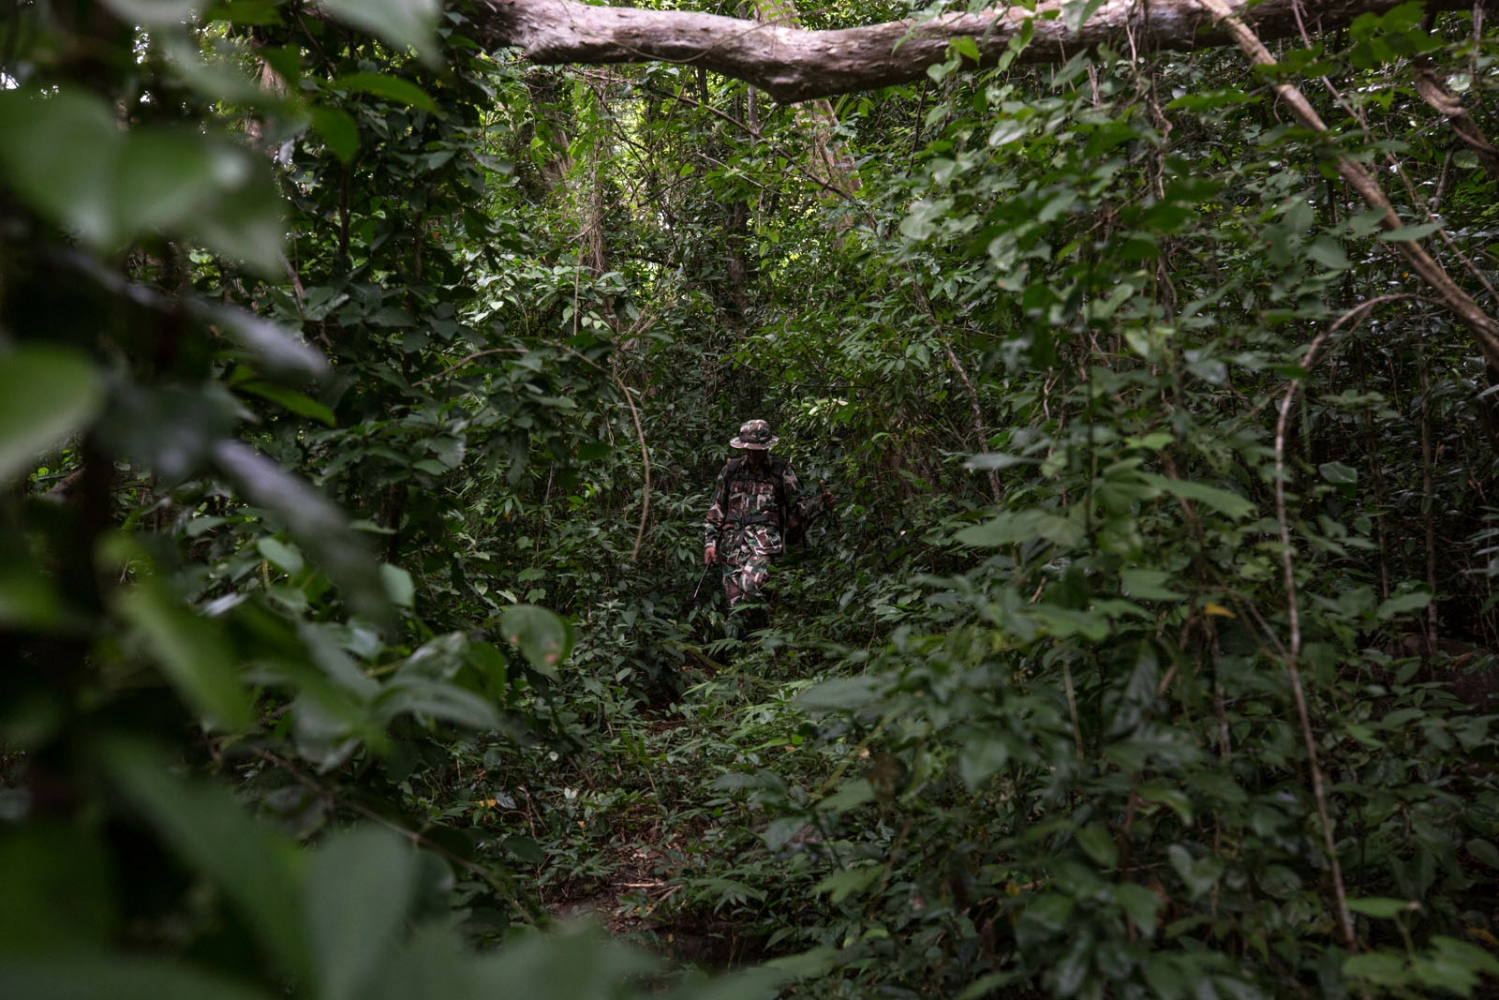 A forest ranger patrols through the forest at the end of a 3 day patrol. This park is located a stones throw from the Cambodian border and sees a lot of movement of illegal loggers entering Thailand from Cambodia and moving west to find the remaining rose wood trees located deeper in the country. Ta Praya National Park, Sa Kaew Province - June 2018